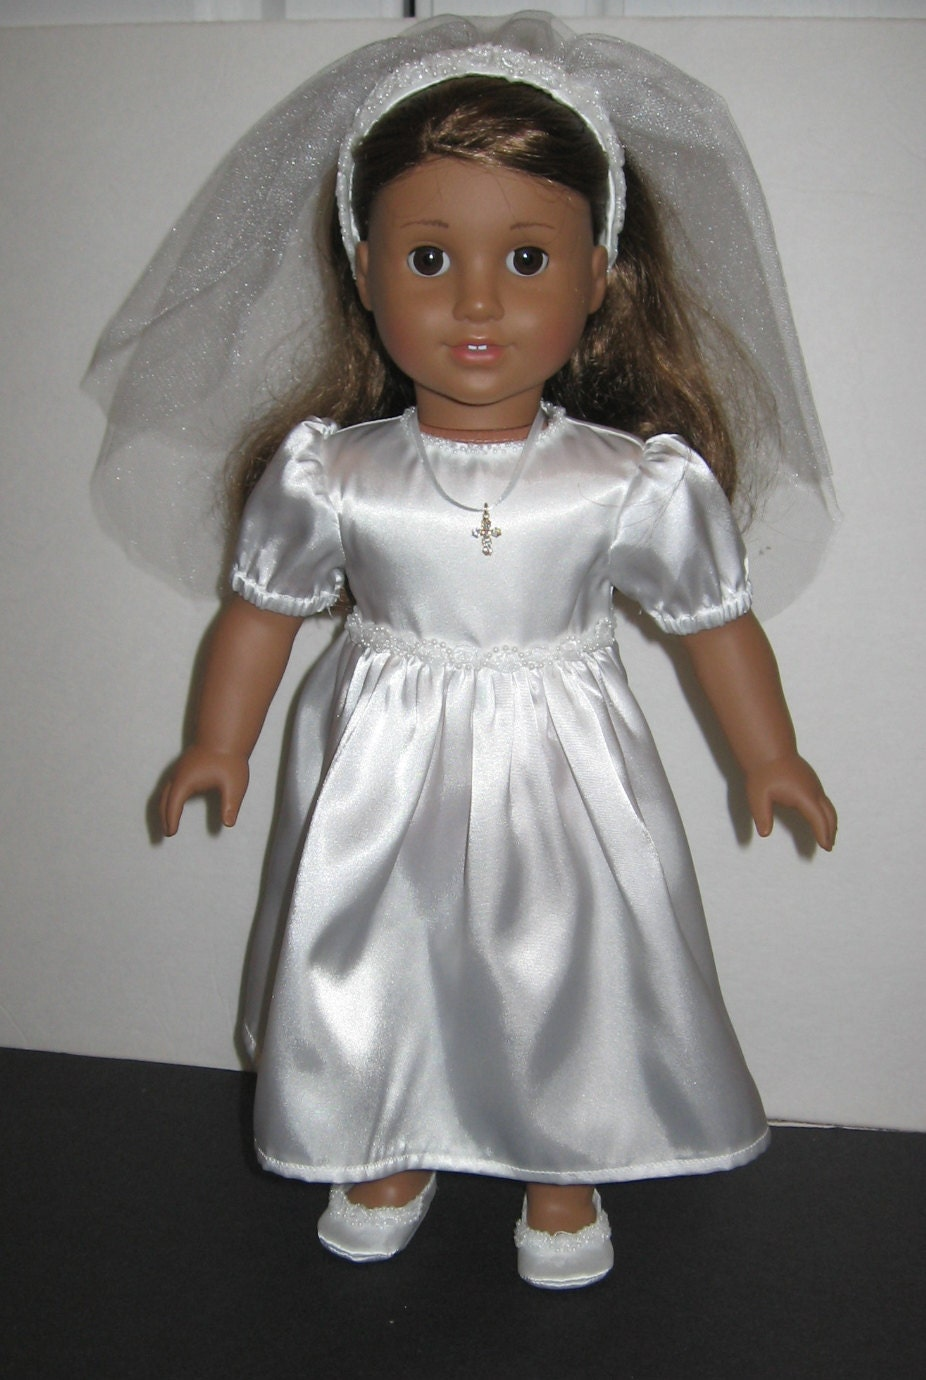 american girl doll first communion outfit dress shoes. Black Bedroom Furniture Sets. Home Design Ideas